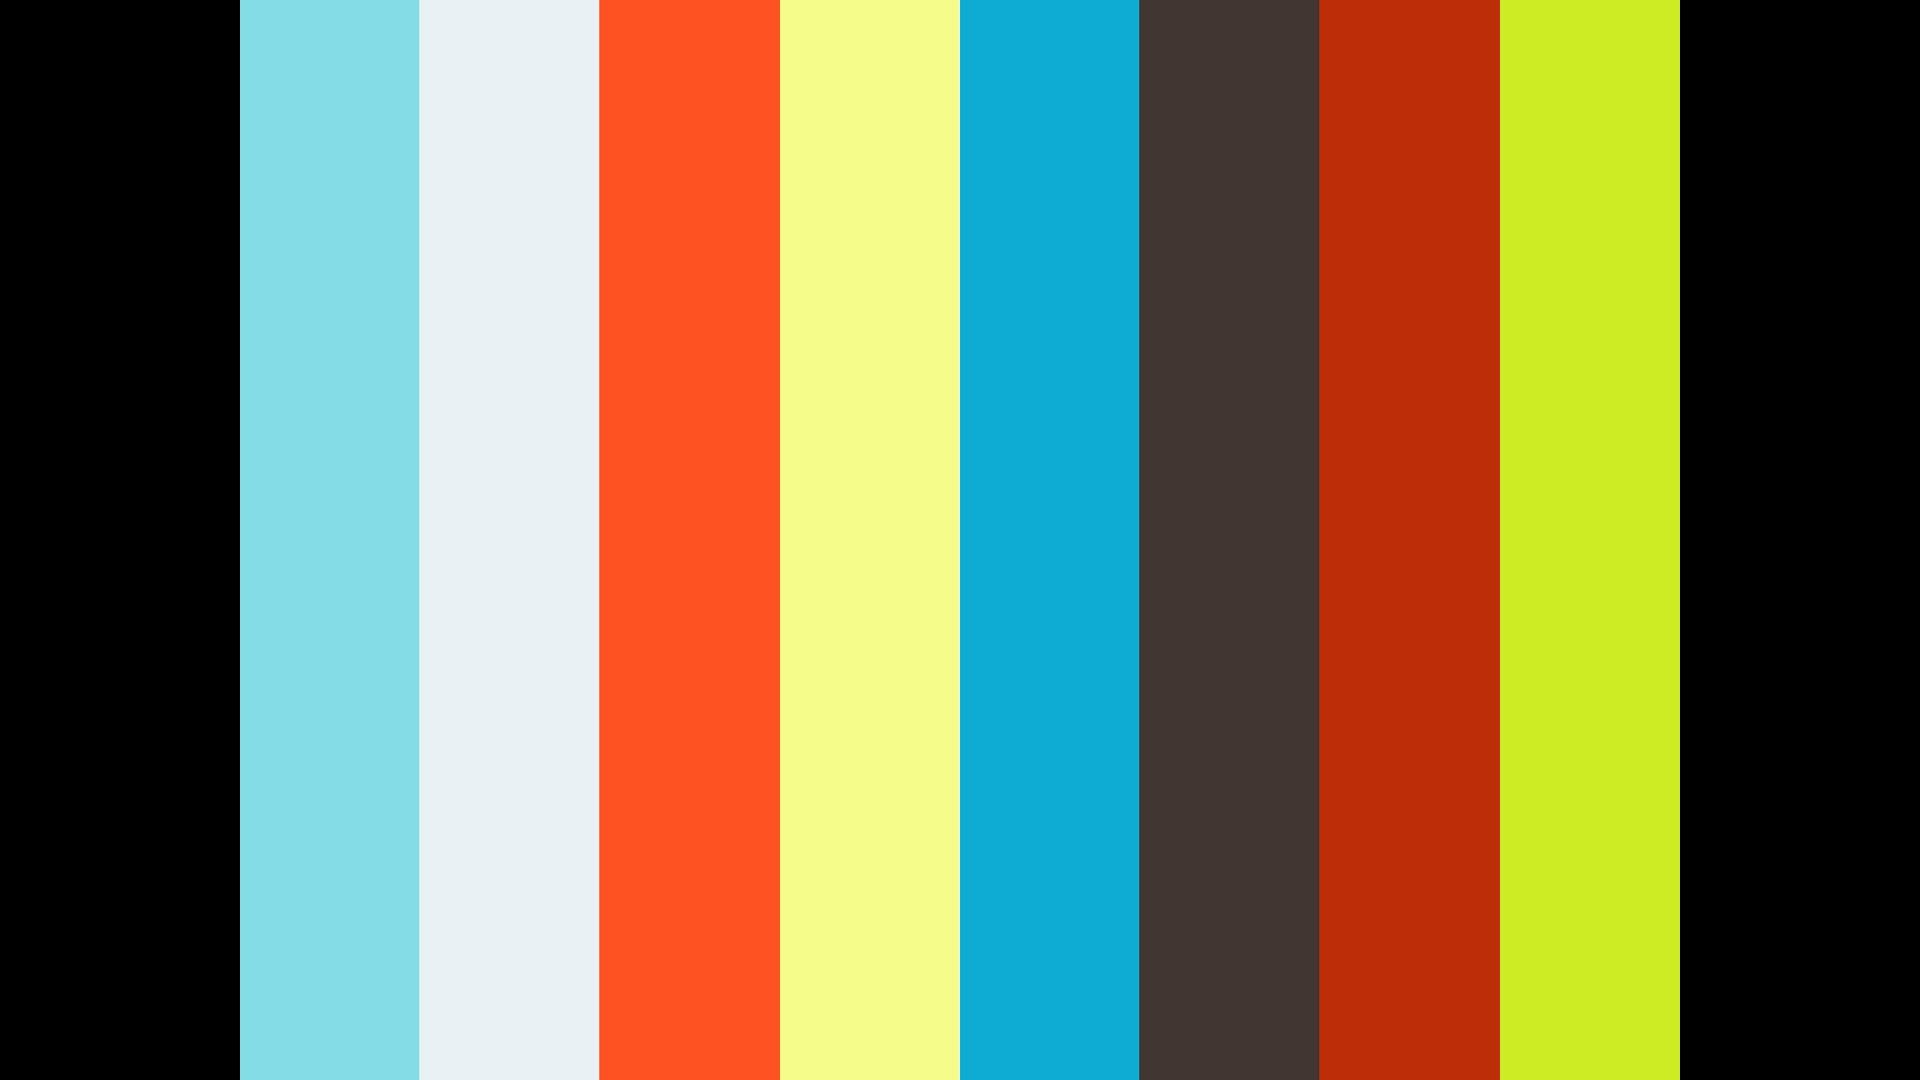 Botanic Gardens Riverwalk - End of Project (Ext)